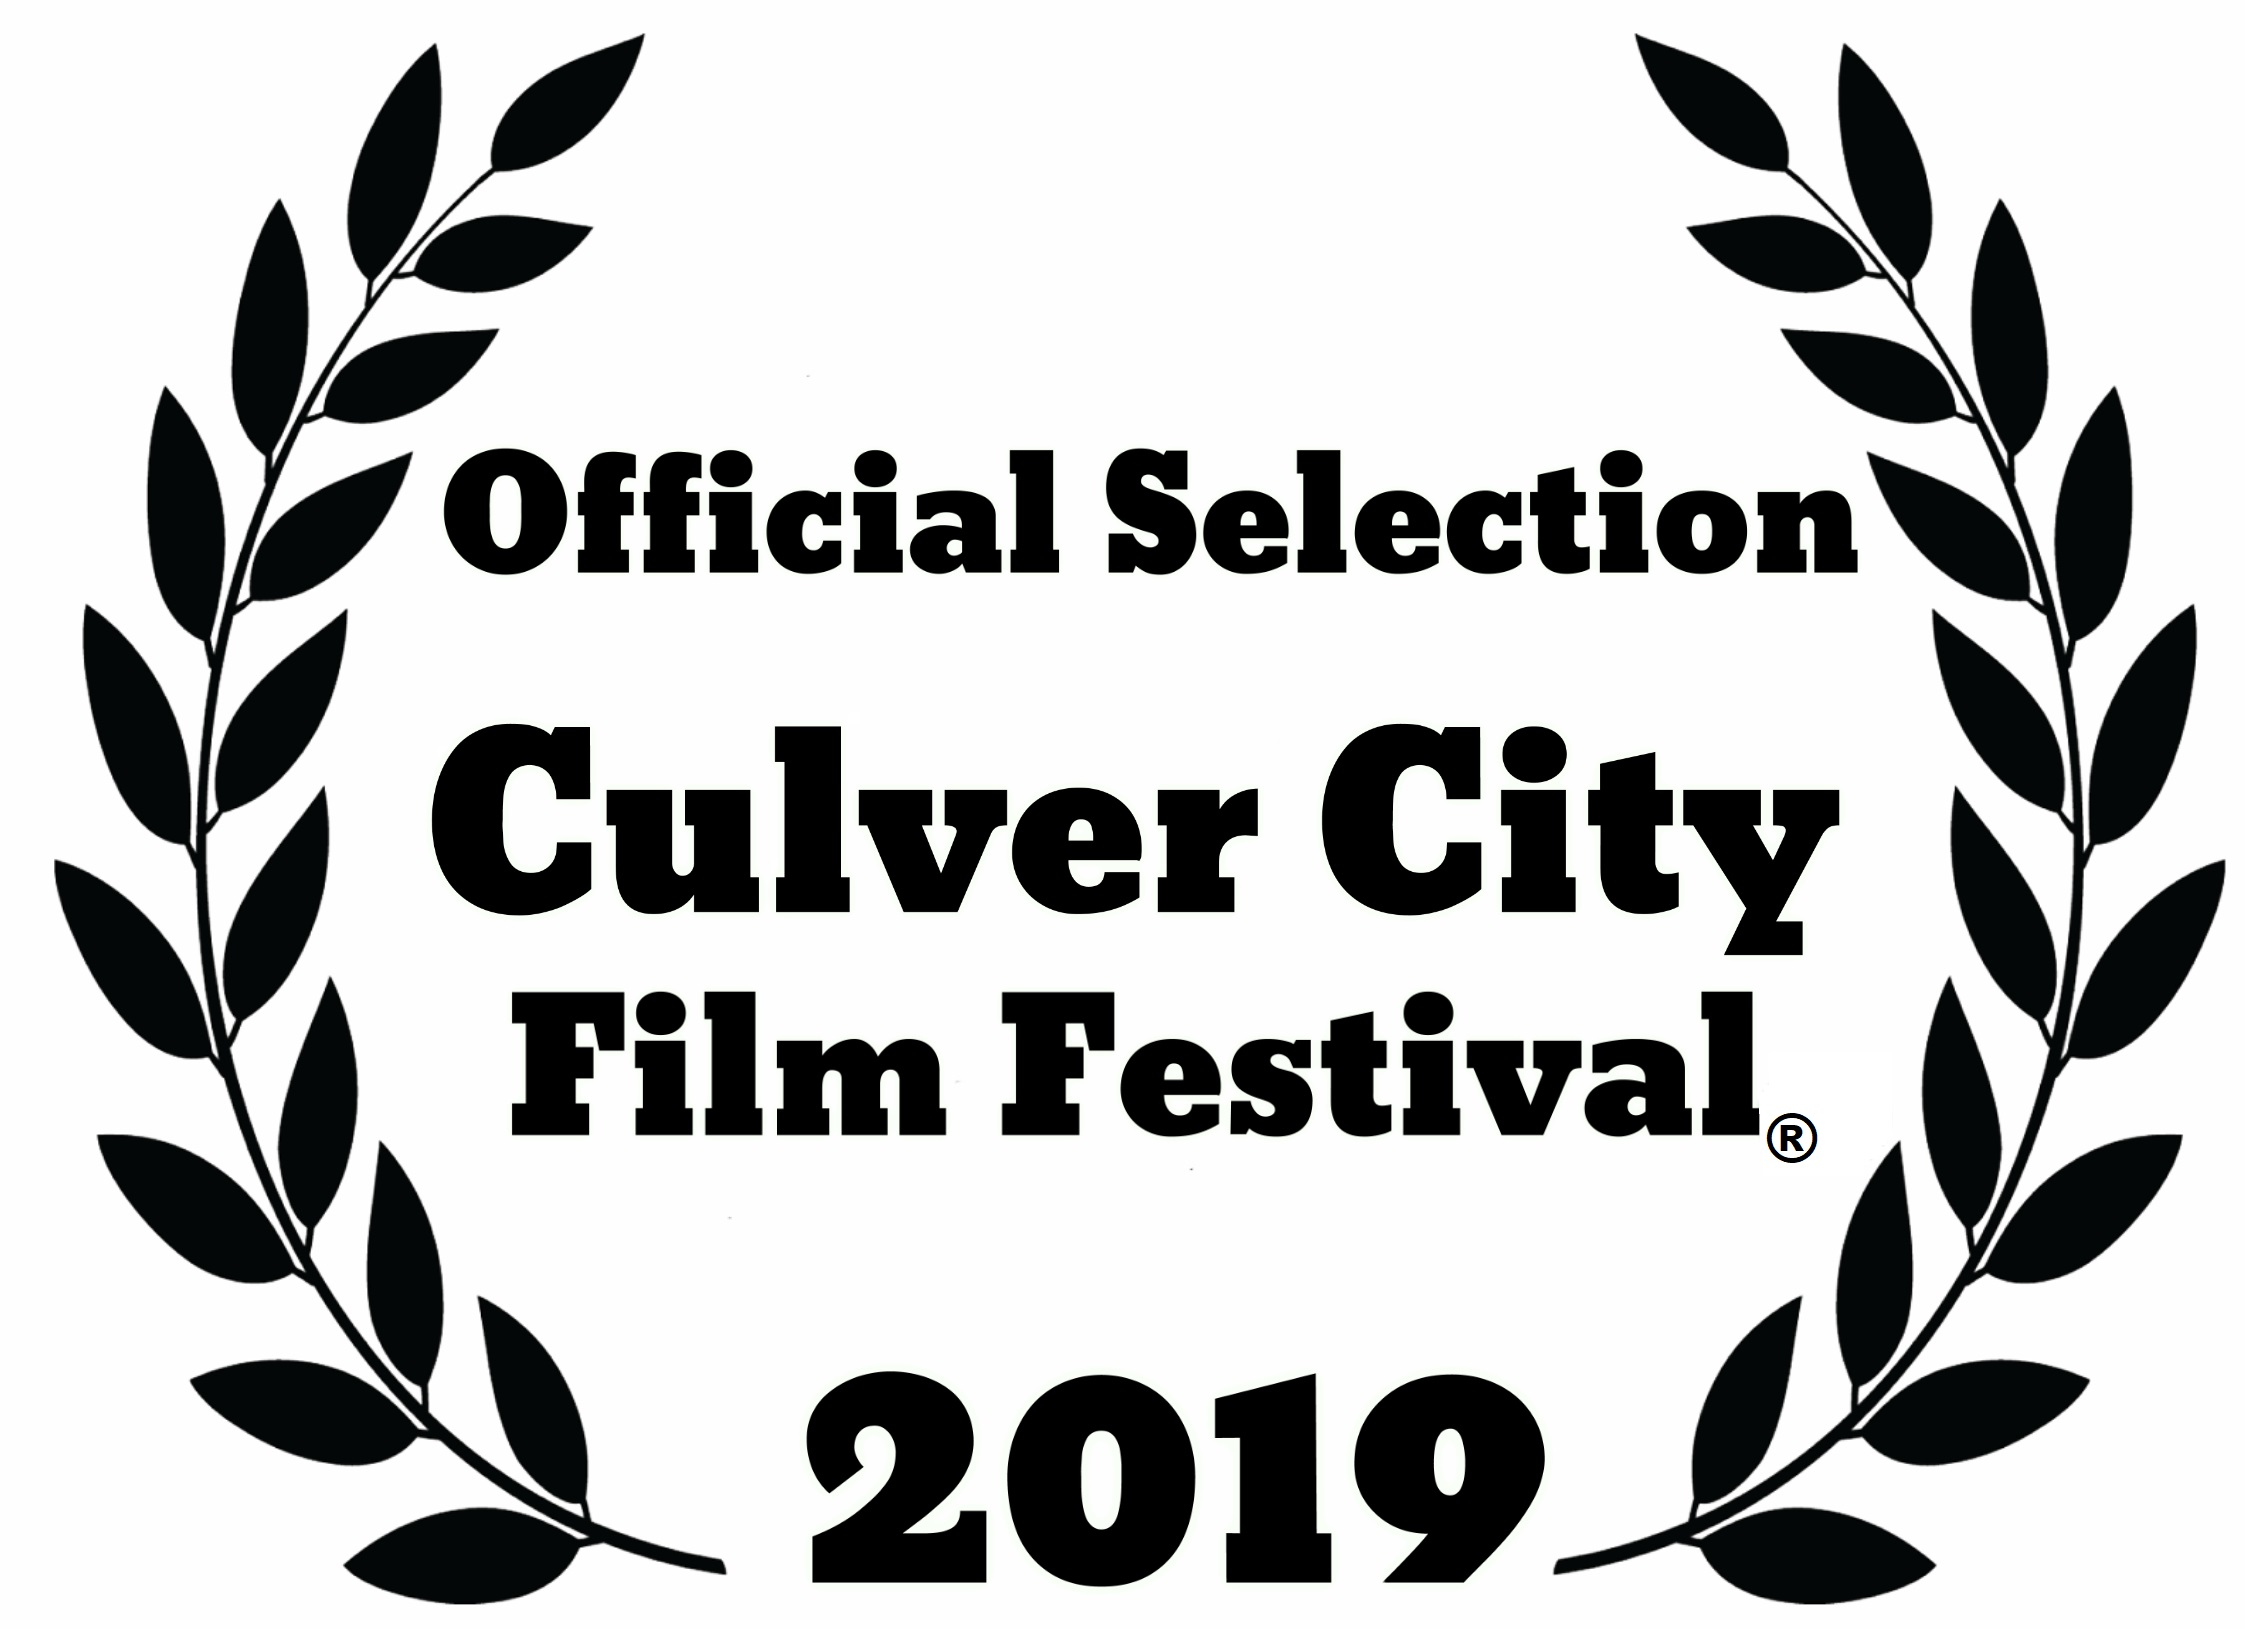 Culver City Film Festival 2019 OS Laurel